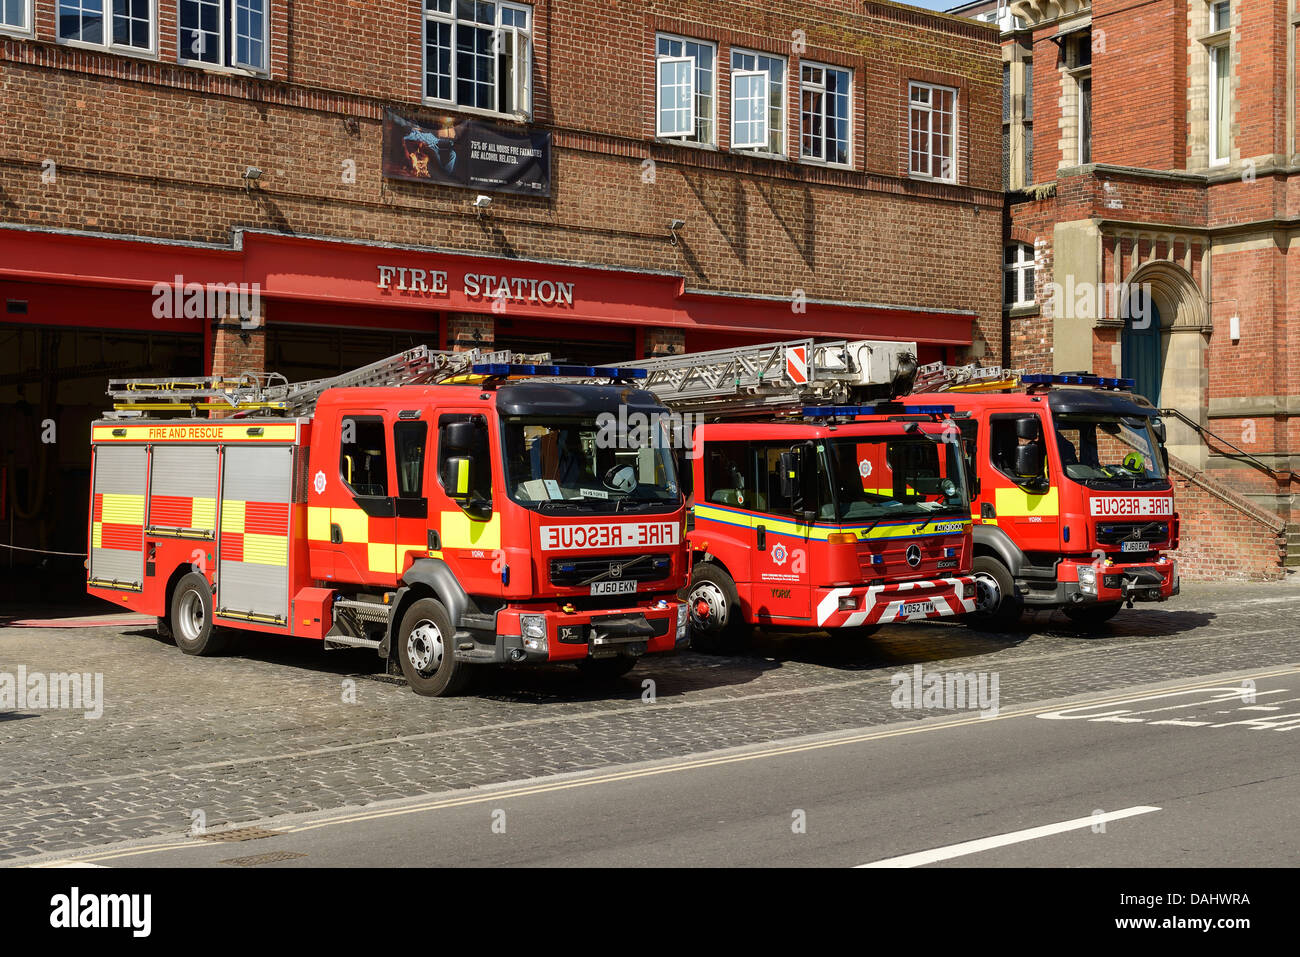 Three fire appliances parked outside York Fire Station - Stock Image